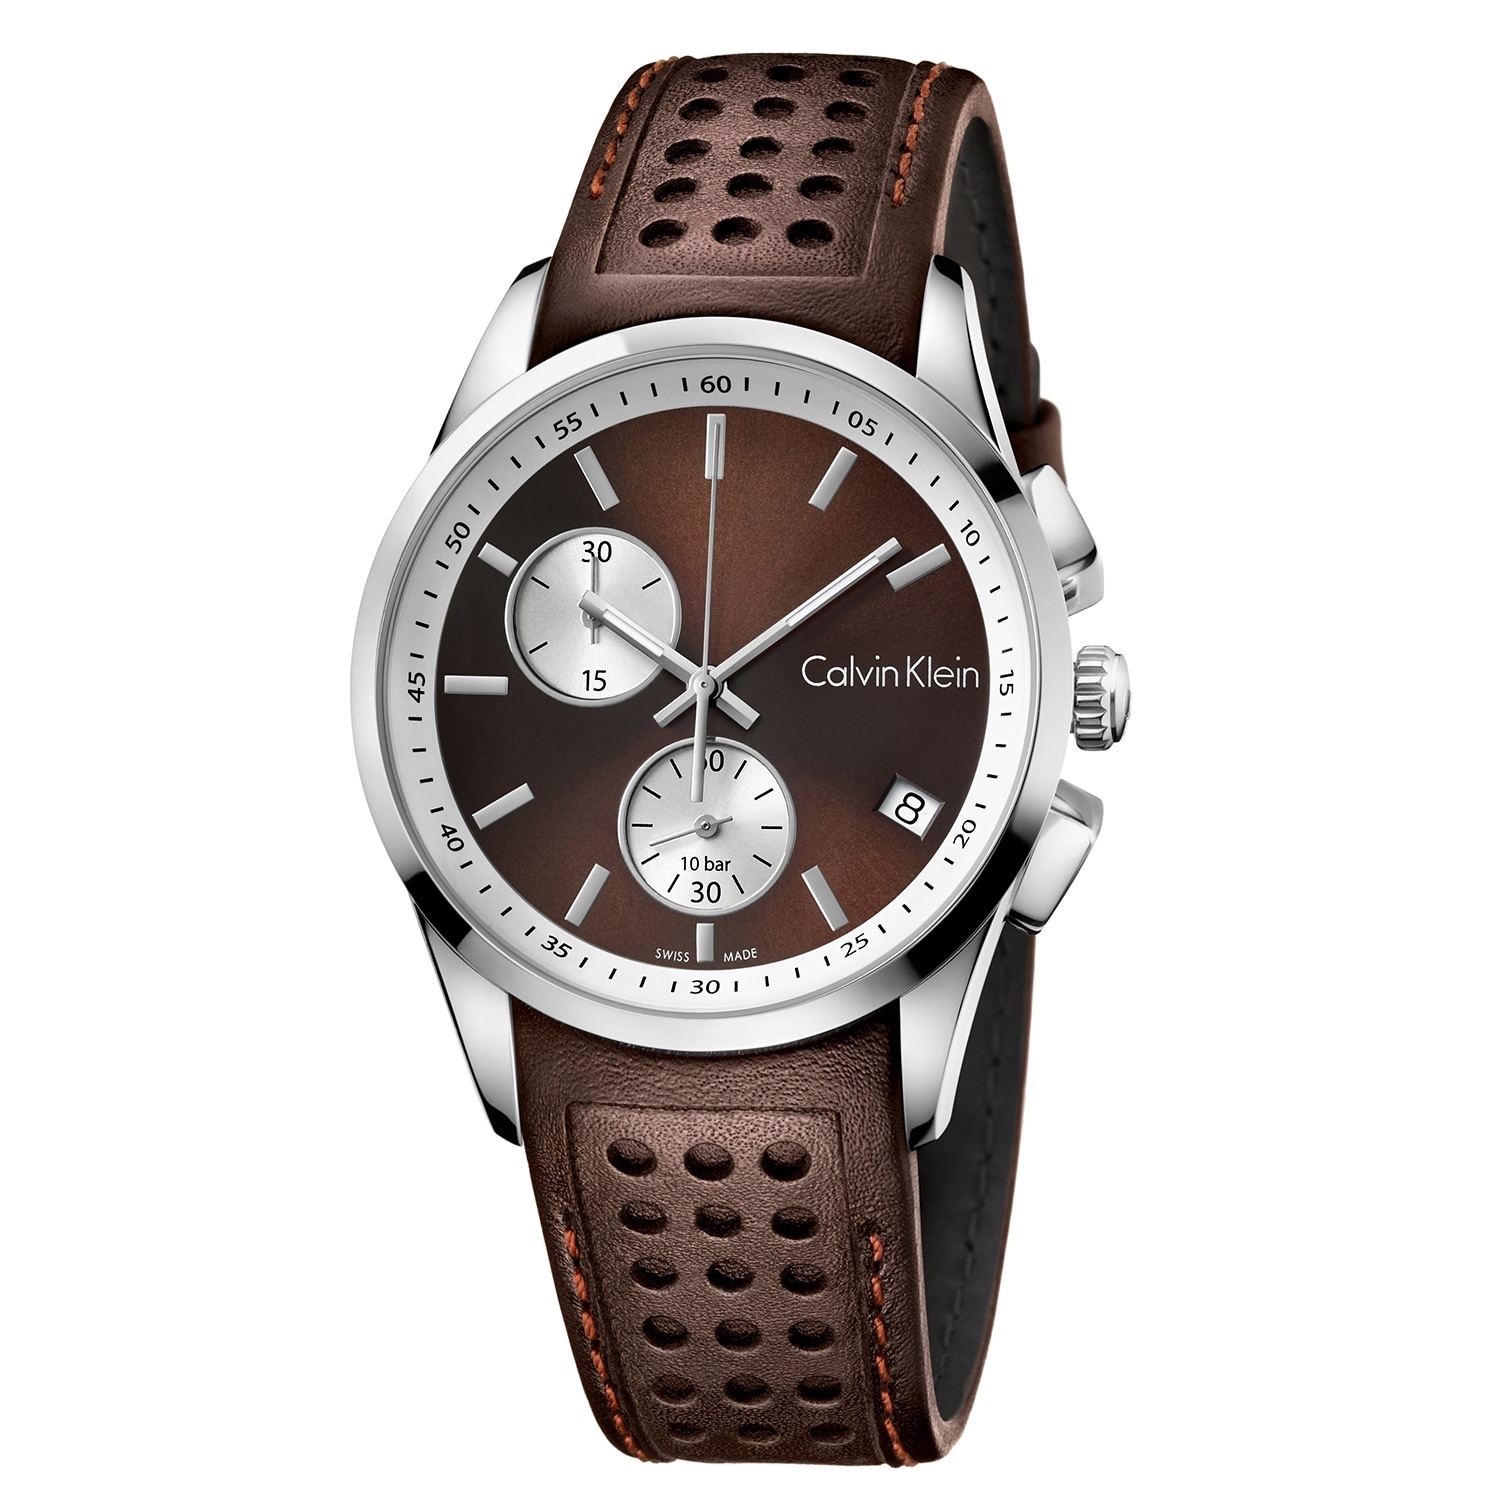 832ab0752 Shop Calvin Klein Bold Brown Leather Strap Men's Watch - Free Shipping  Today - Overstock - 22750661